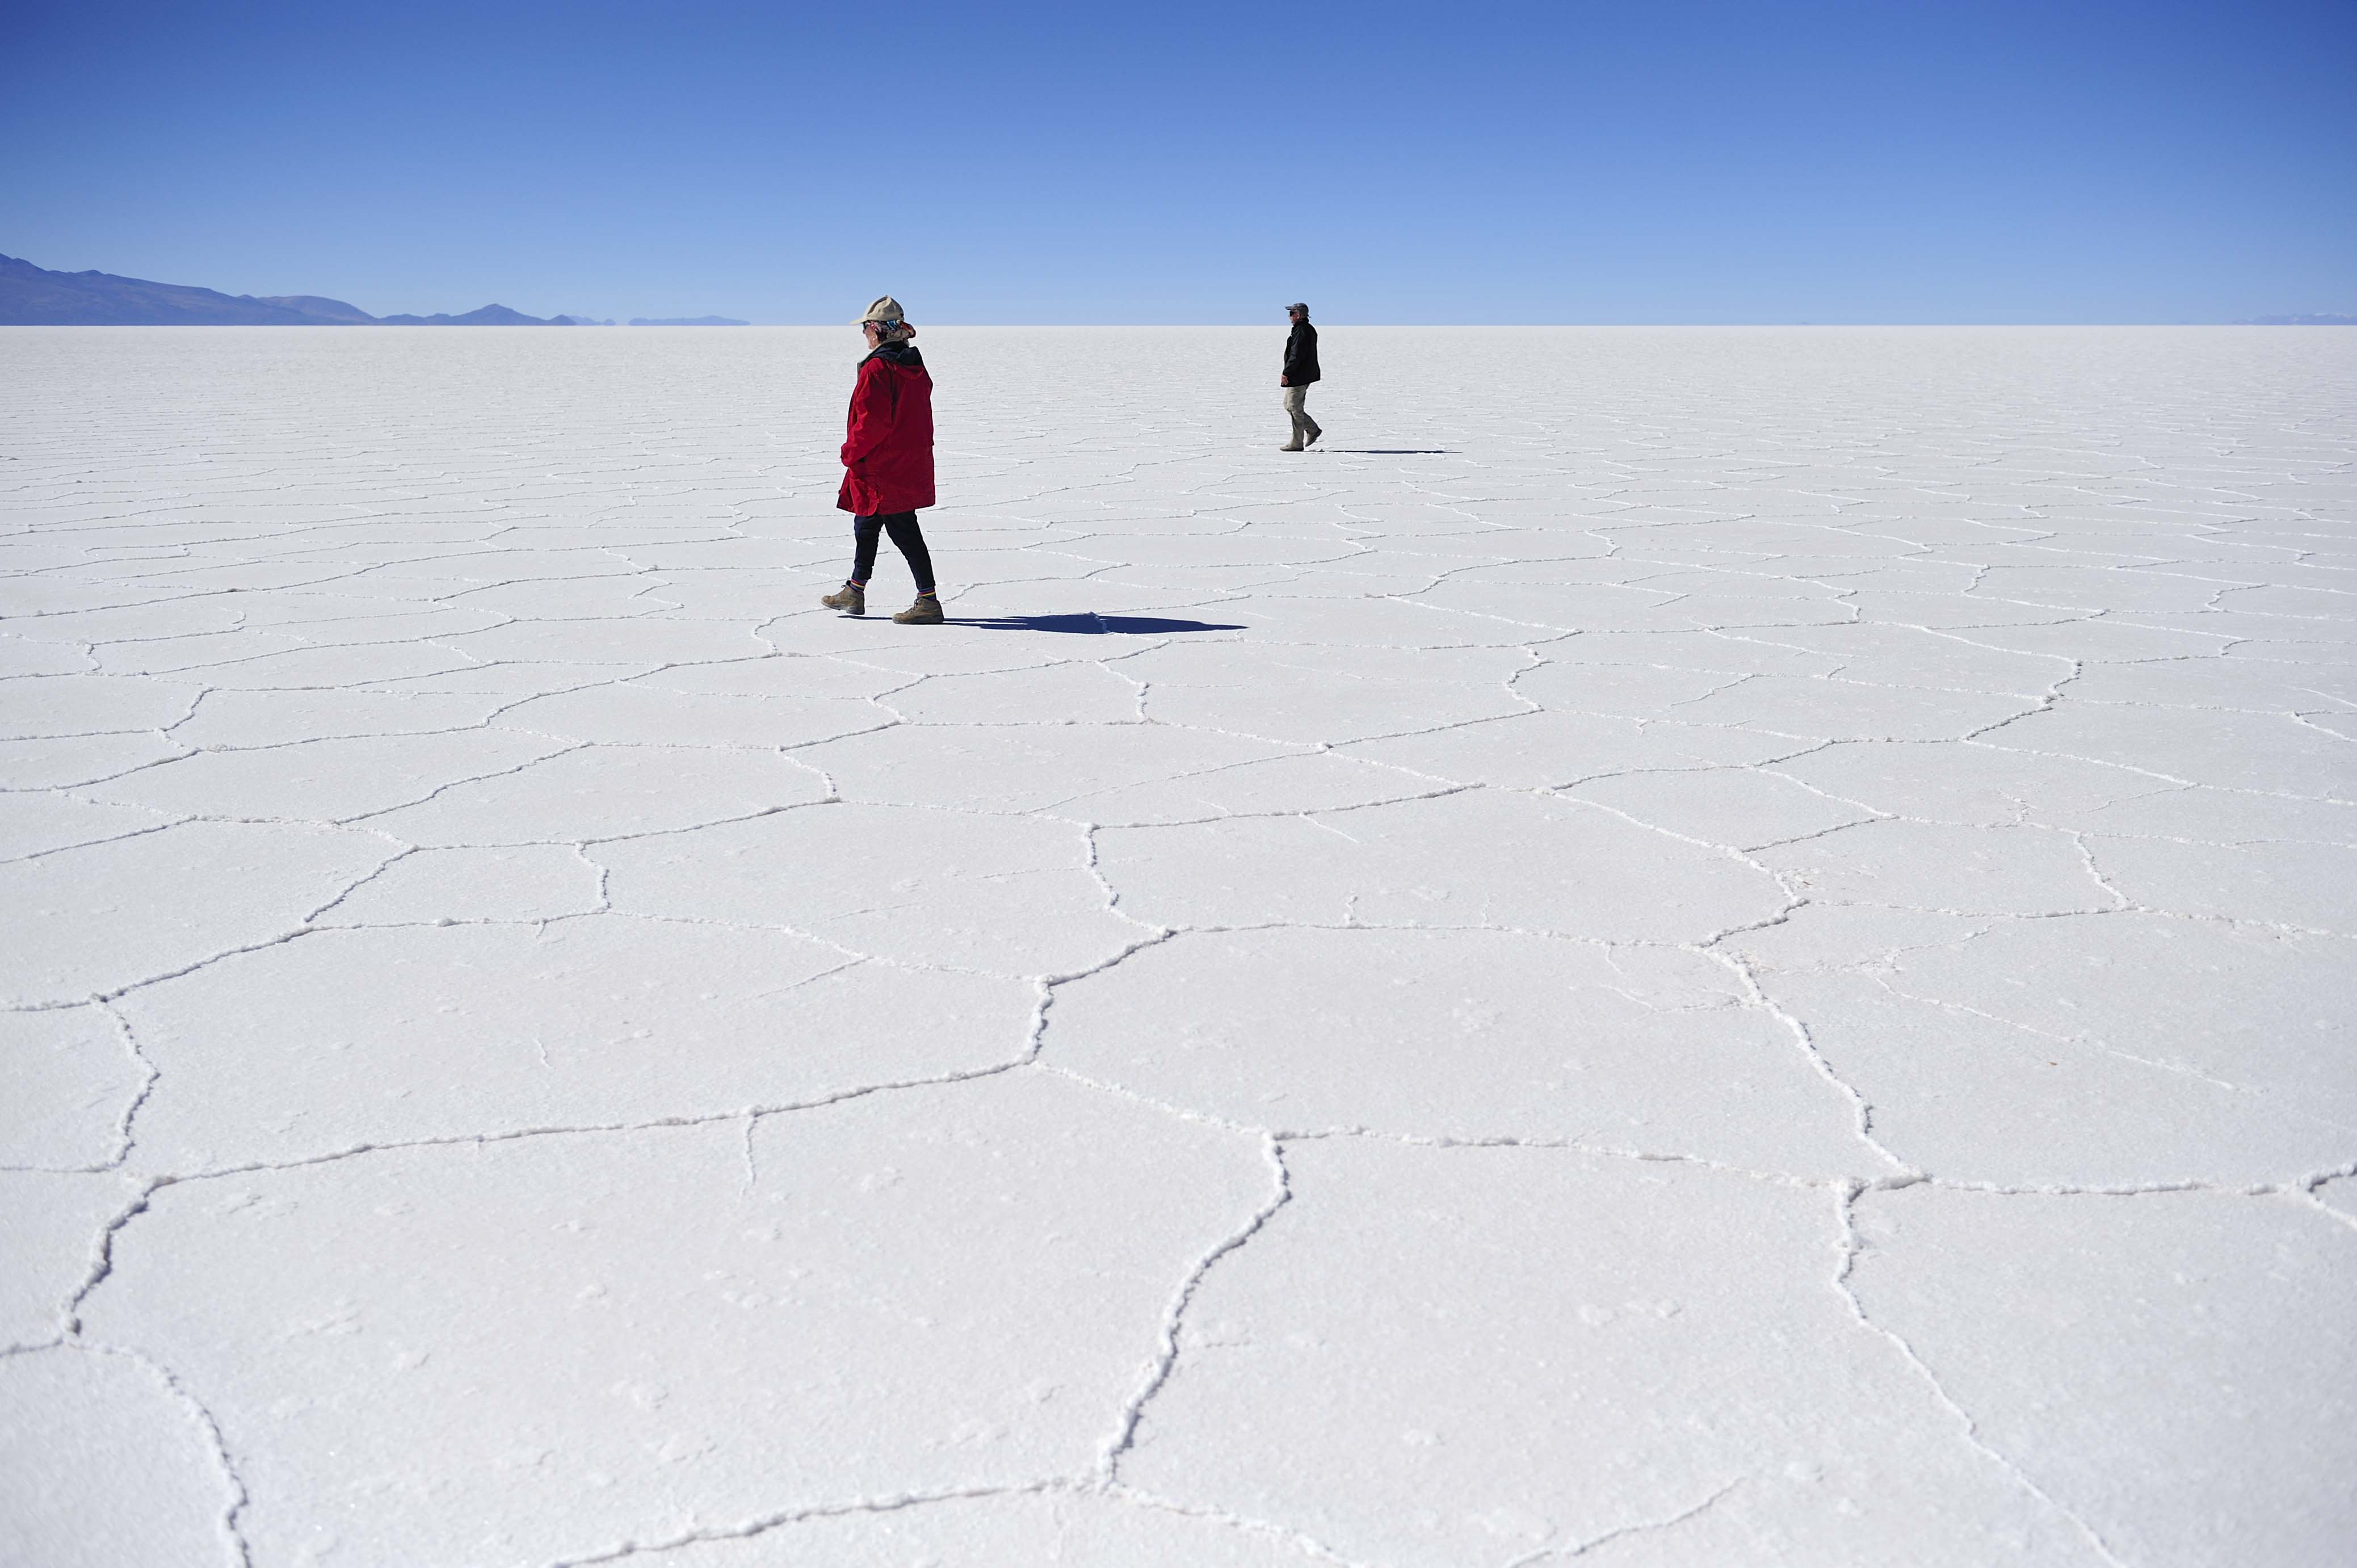 Bolivia's Uyuni Salt Flats are one of the unique landscapes featured in explora's itineraries (images courtesy of explora)